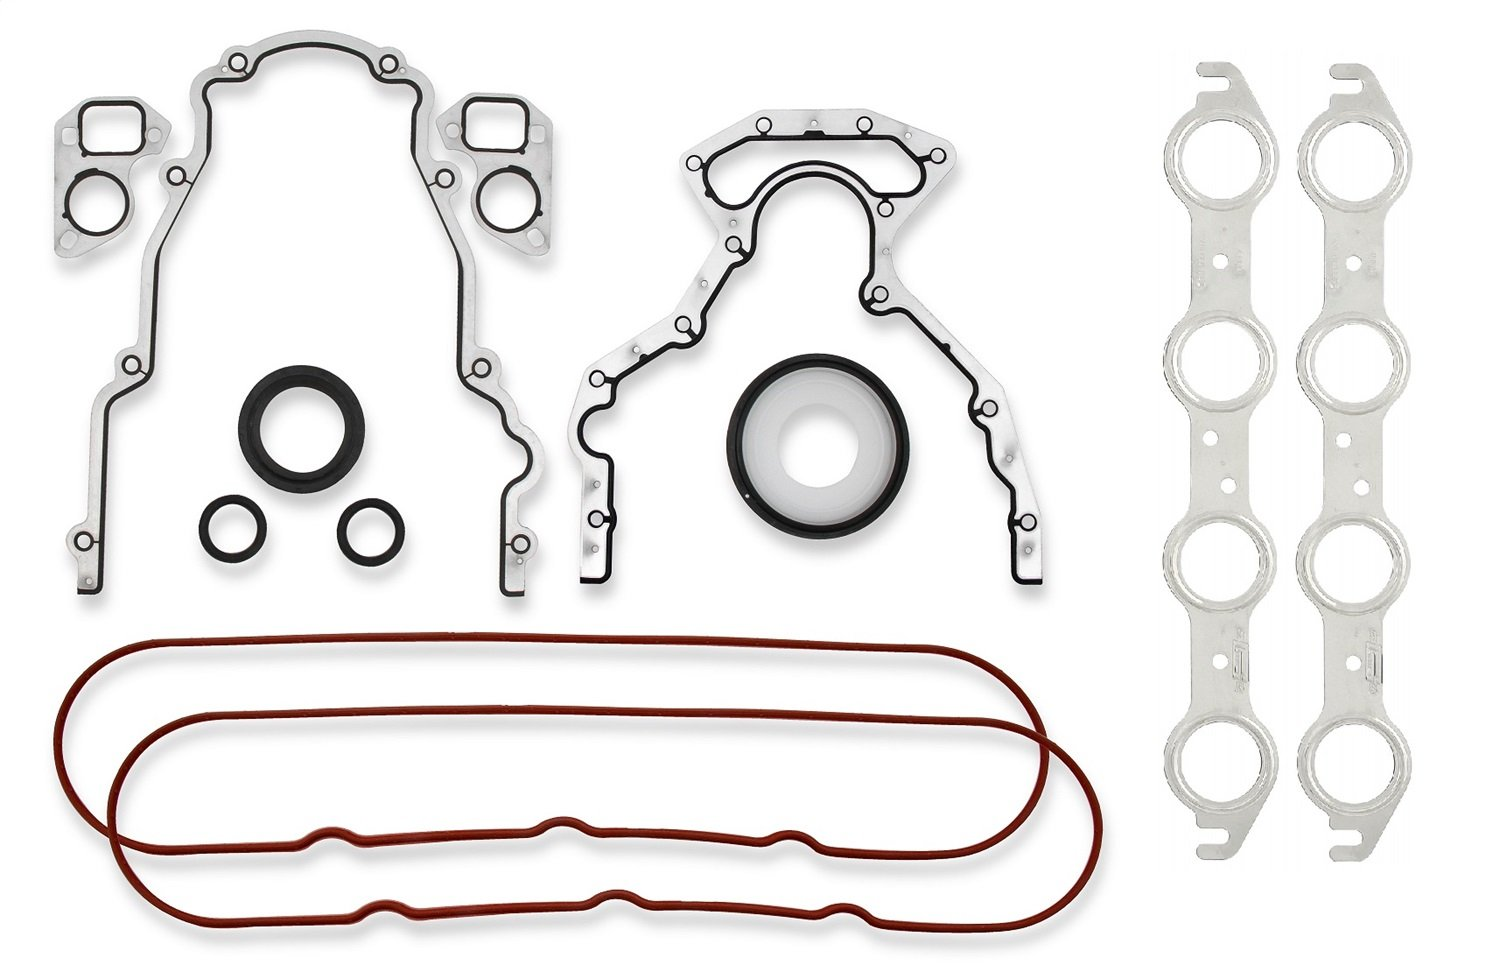 Mr Gasket 61000G Engine Conversion Gasket Set  Incl. Water Pump/Timing Cover/Rear Cover/MLS Header Gaskets Harmonic Balancer/Rear Main/Oil Pump/Oil Pickup Seals Engine Conversion Gasket Set